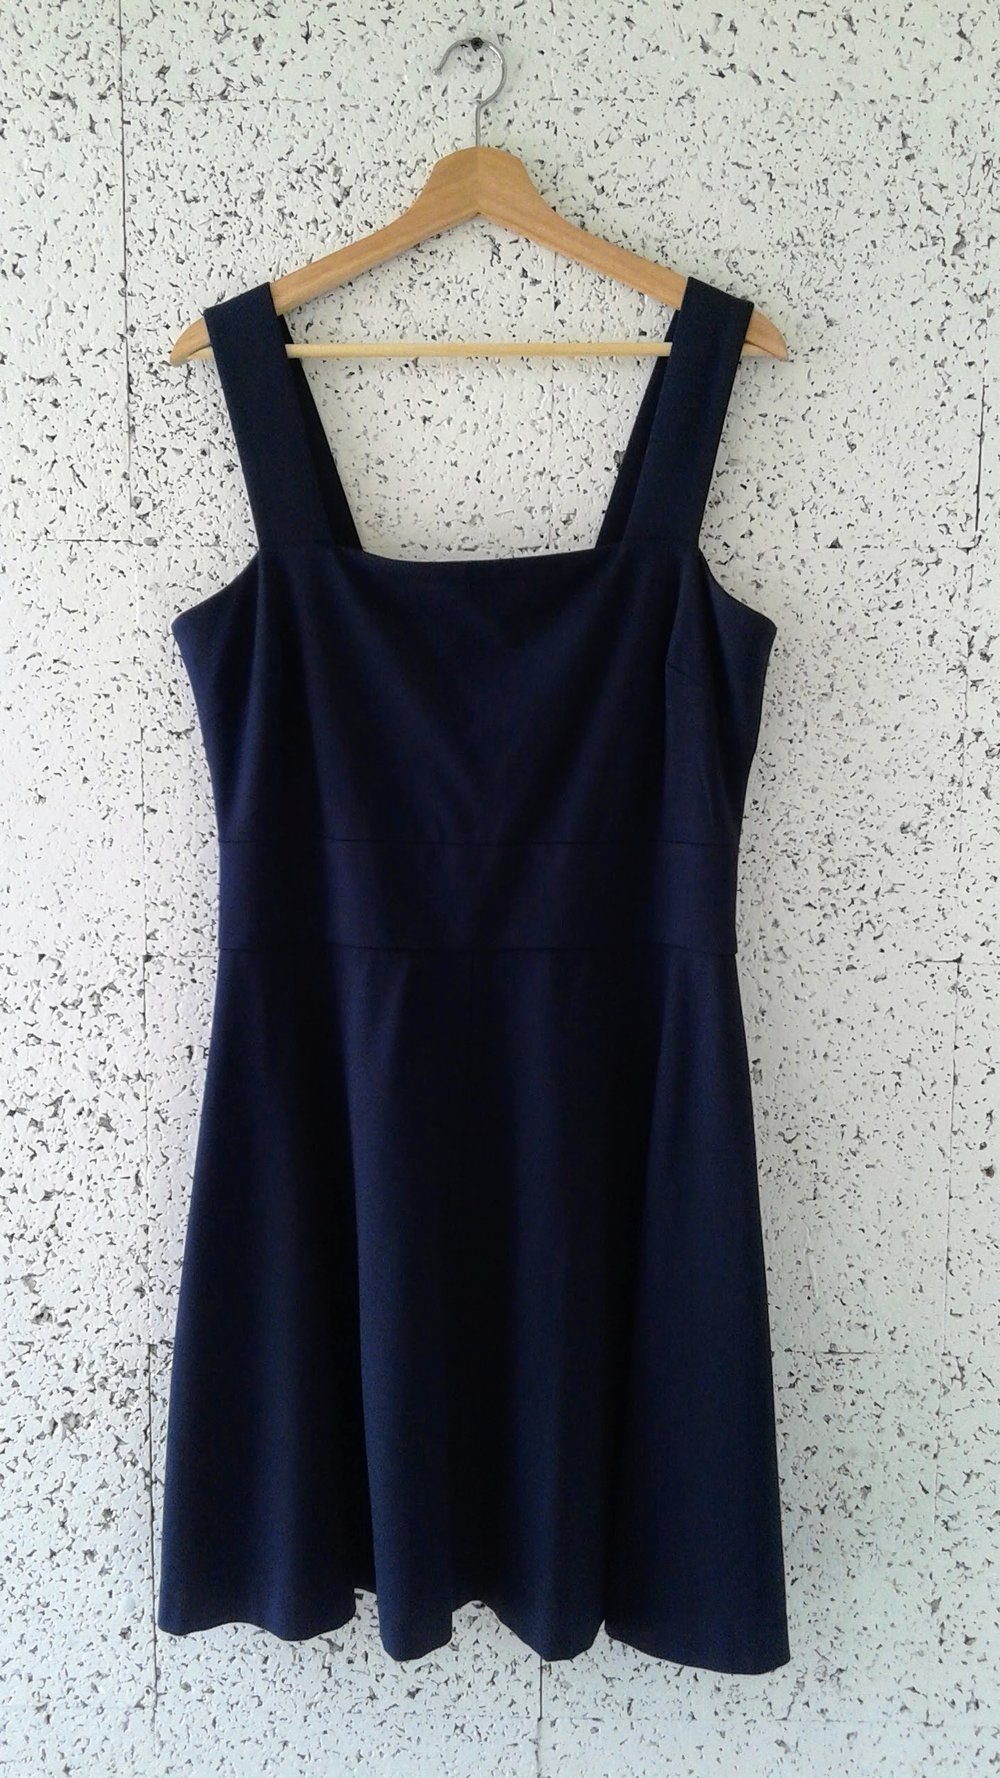 Banana Republic dress; Size 14, $36